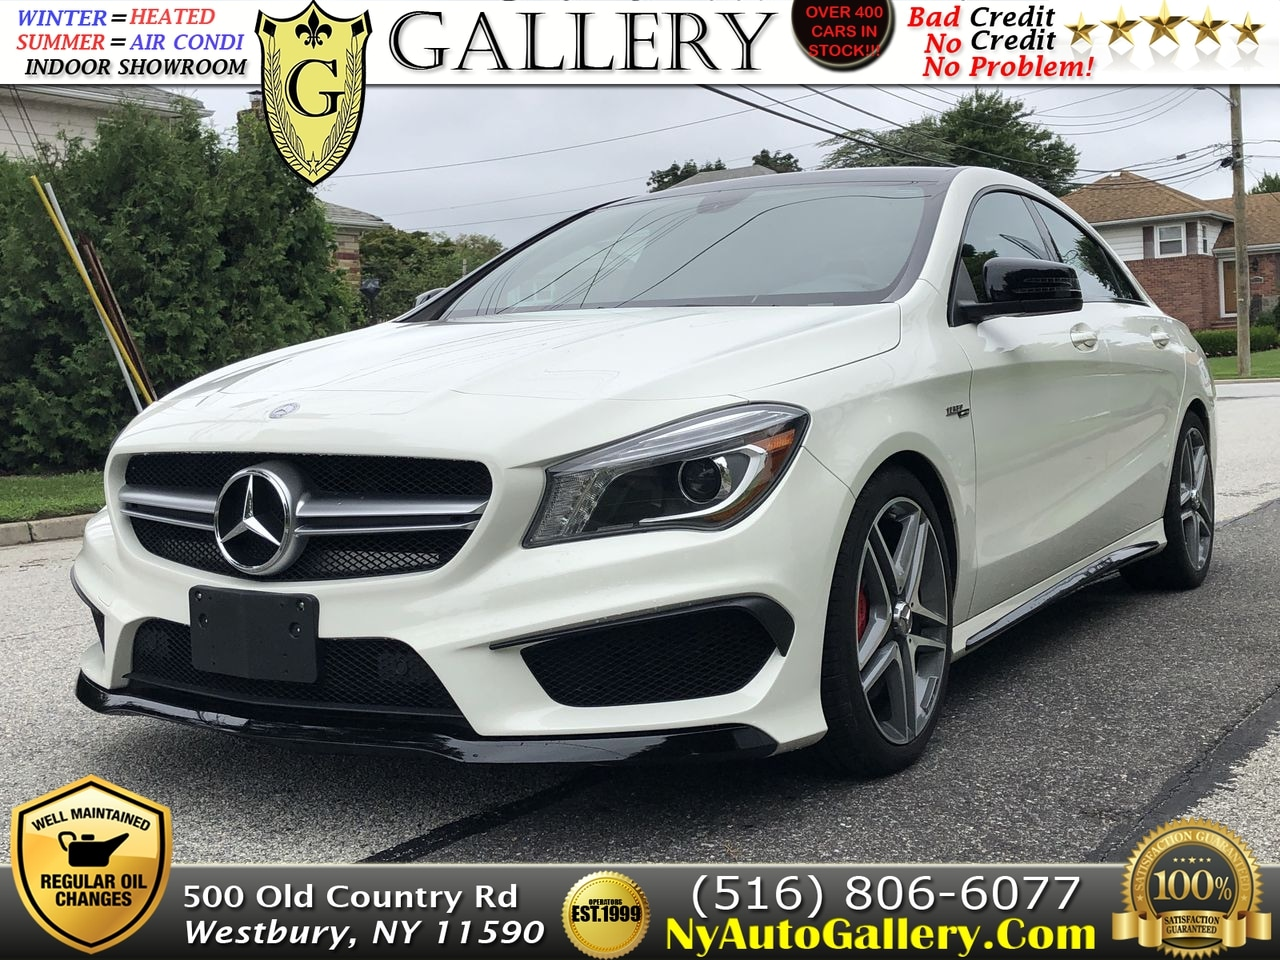 2014 Mercedes Benz CLA Class CLA 45 AMG Coupe